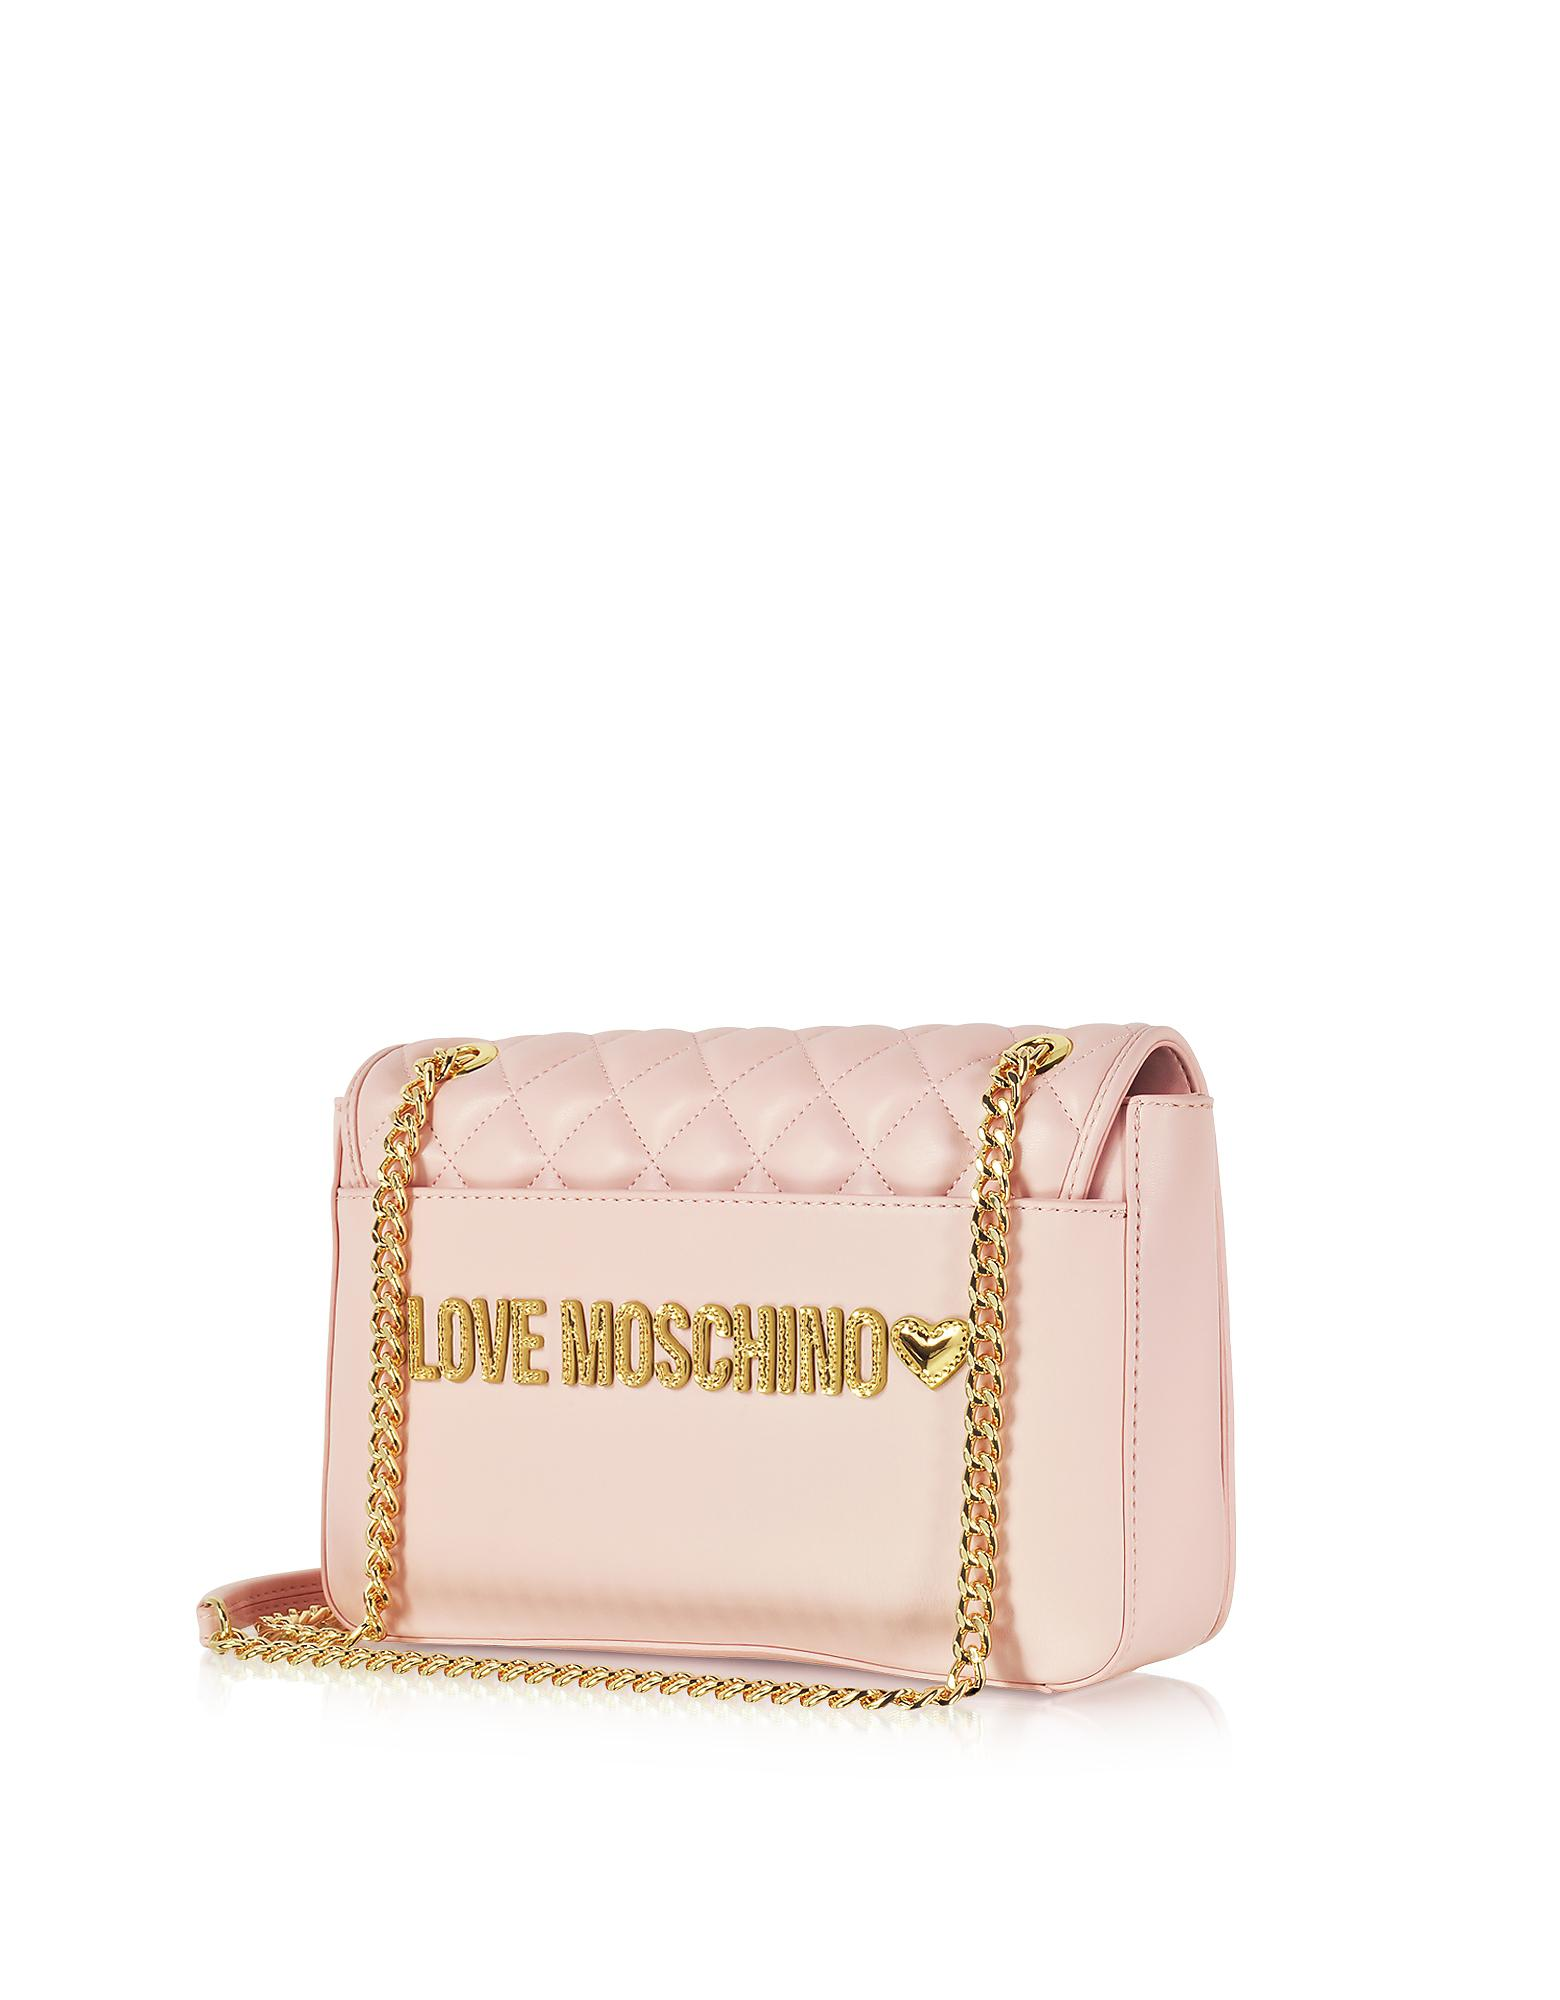 3b883a9f74 Love Moschino Pink Superquilted Eco-leather Shoulder Bag in Pink - Lyst